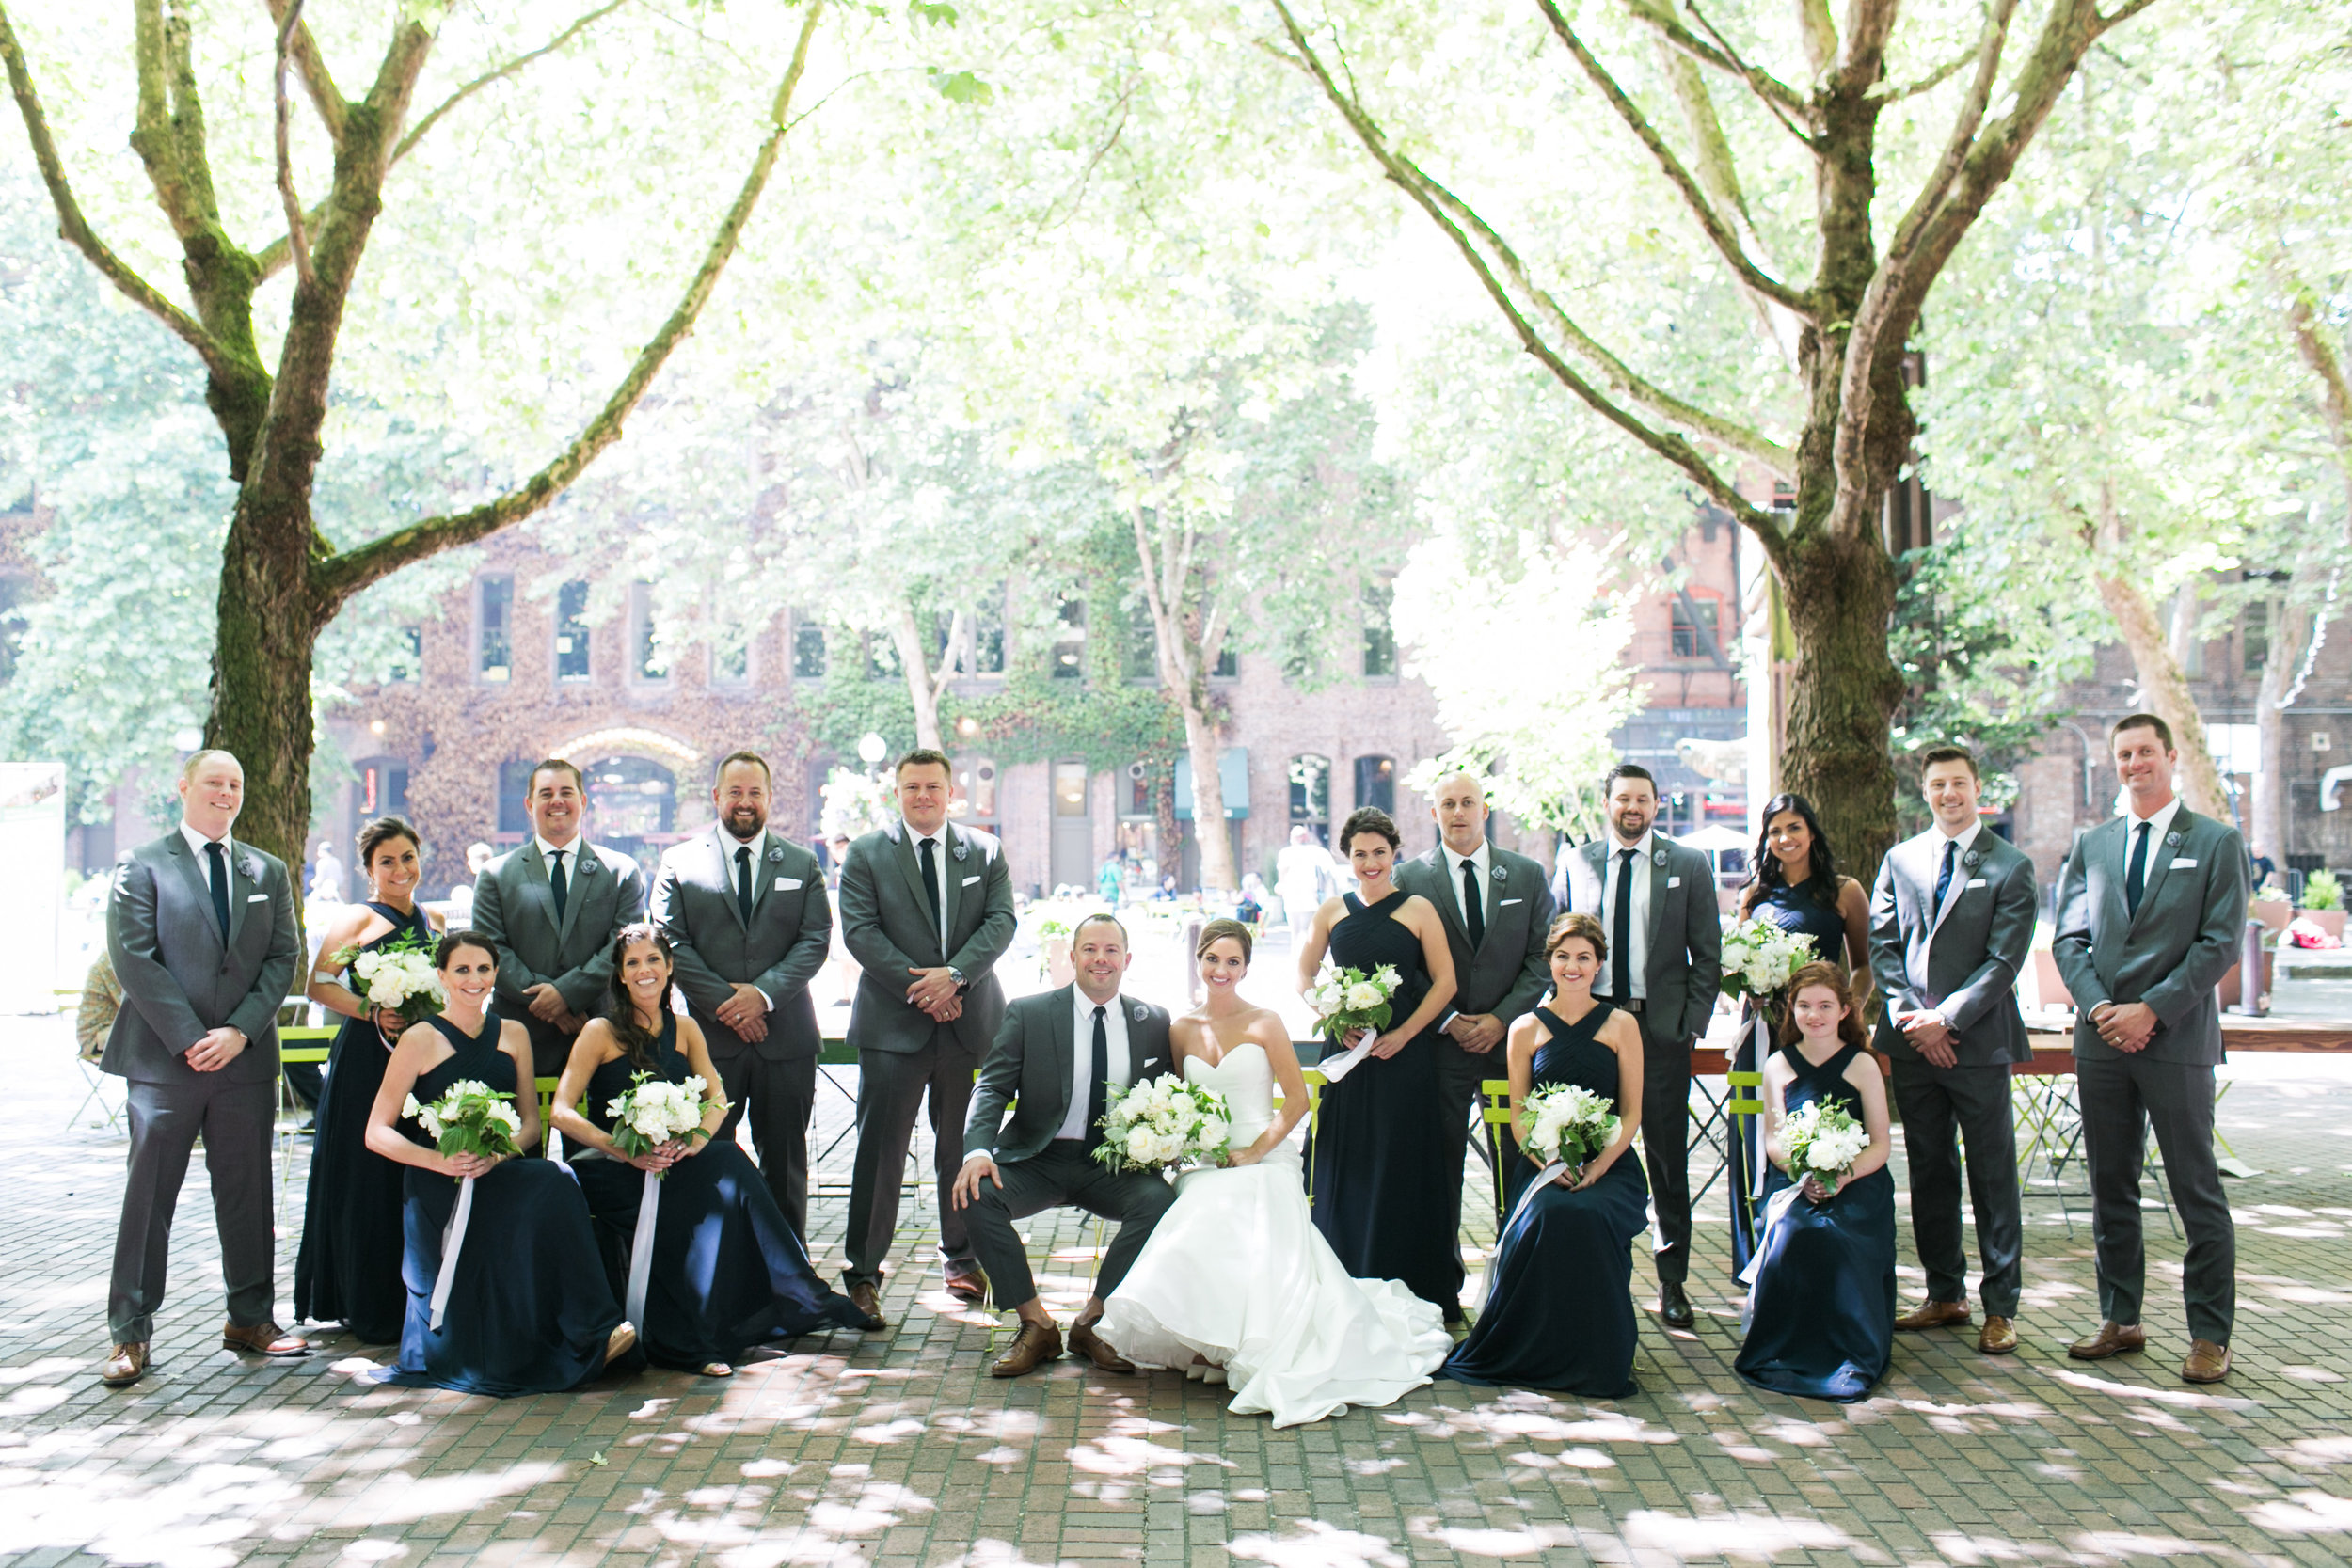 Bridalbliss.com | Seattle Wedding | Oregon Event Planning and Design | Matthew Land Photography